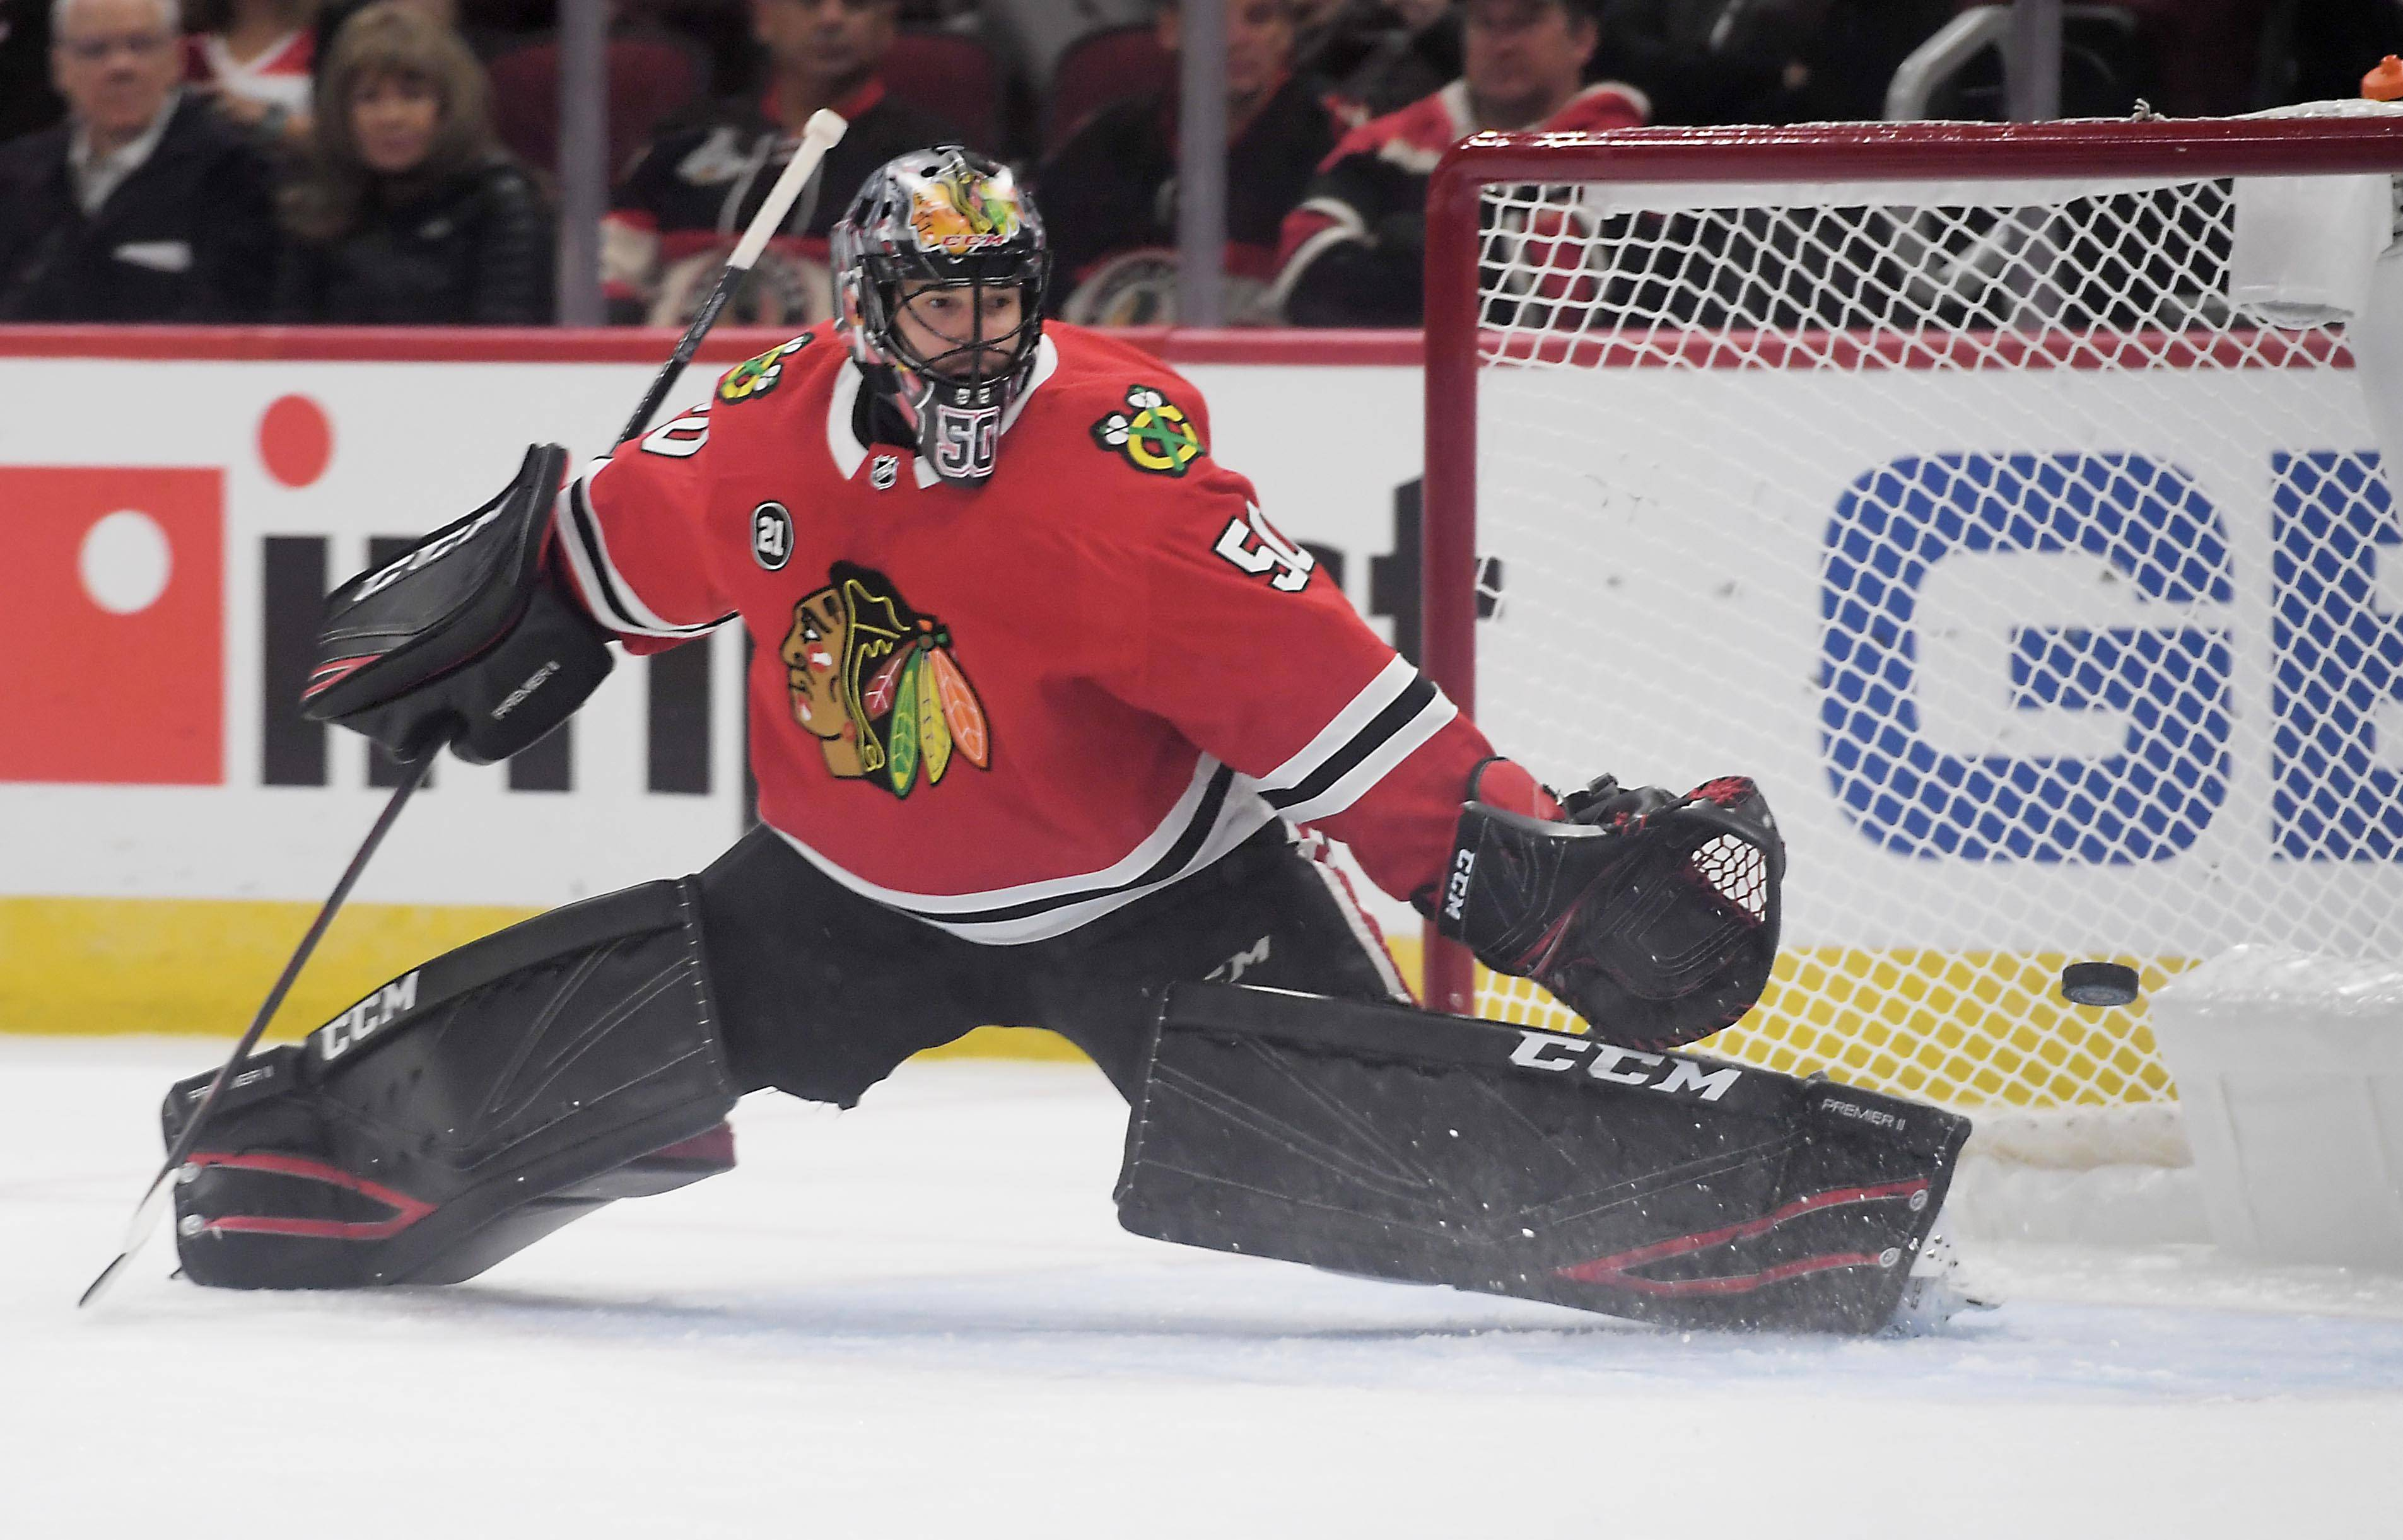 John Starks/jstarks@dailyherald.comChicago Blackhawks goaltender Corey Crawford gives up a goal to Arizona Coyotes left wing Lawson Crouse in the first period Thursday at the United Center in Chicago.